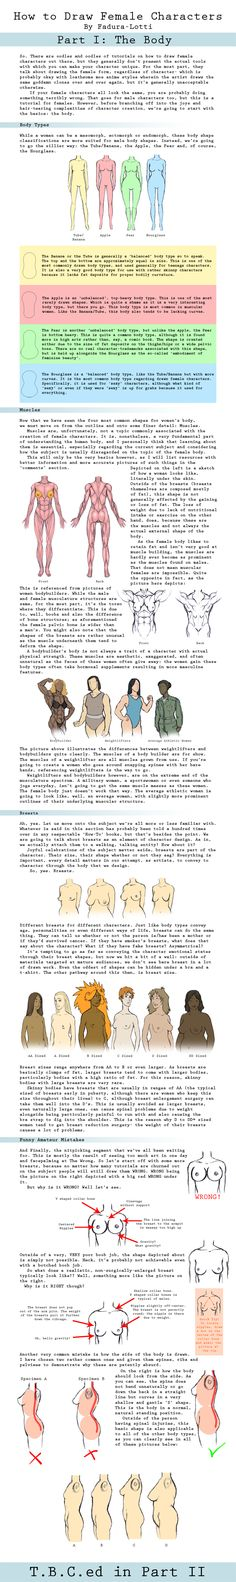 How to Draw Female Characters by Fadura-lotti.deviantart.com on @deviantART  Variety of female body types+breast physics (no, no juggle-physics)